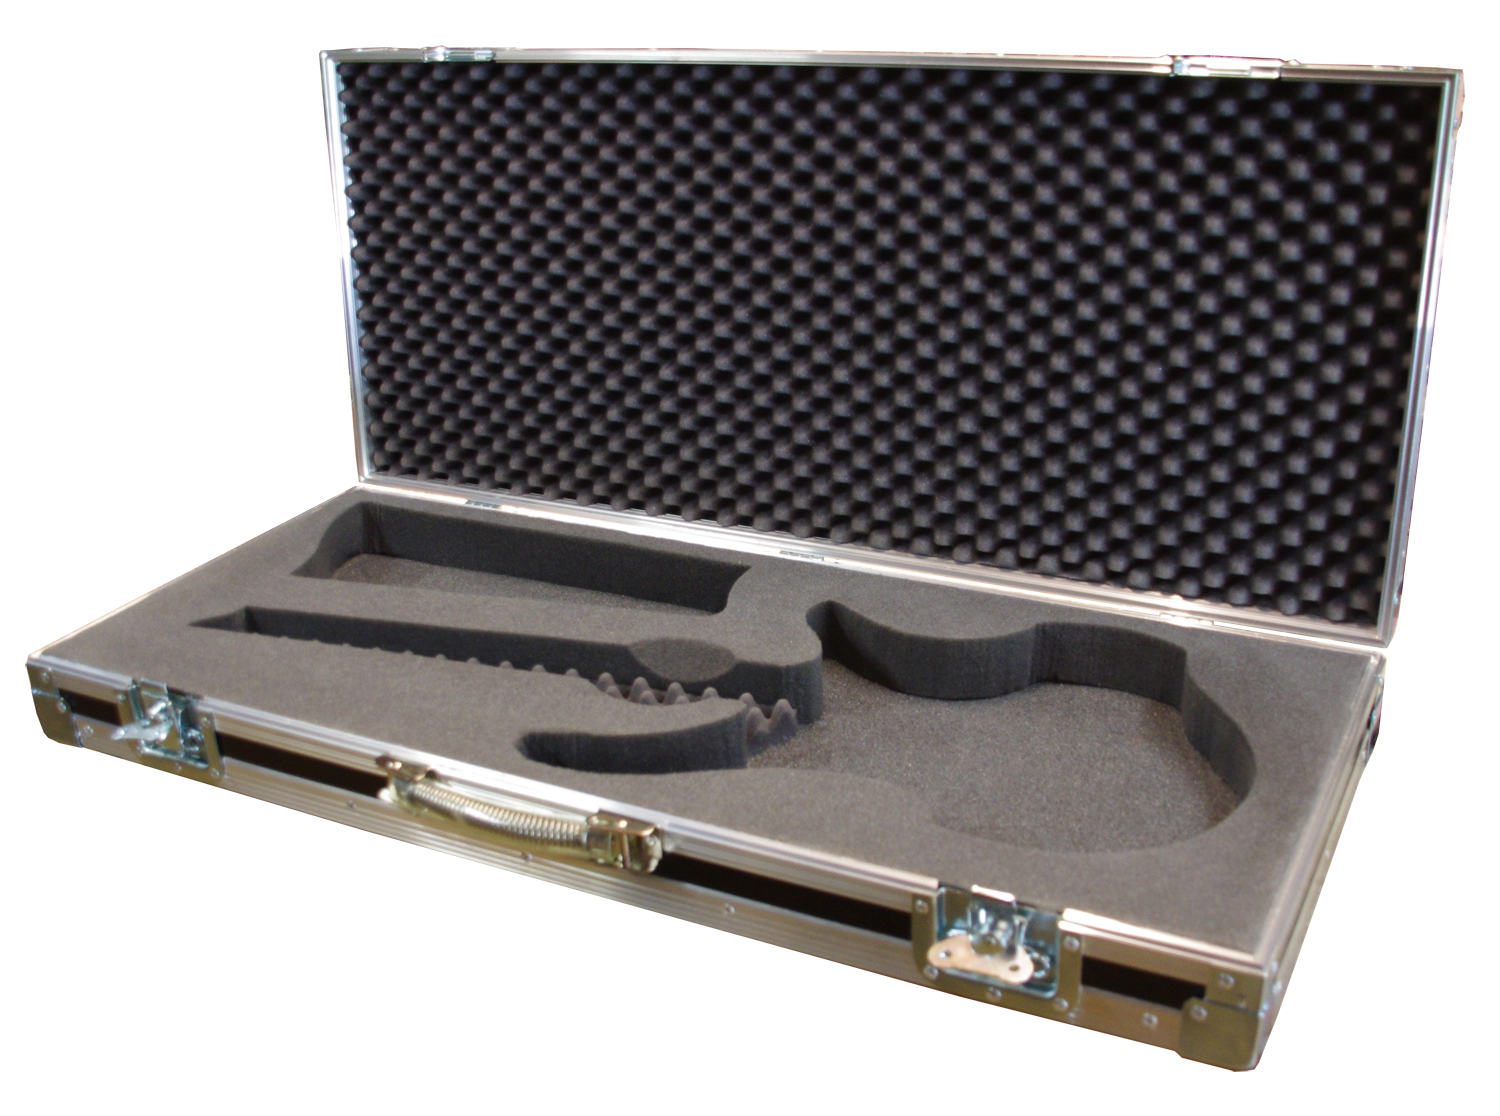 Flight case ridebox pour guitare Serie Sidh de Mermet